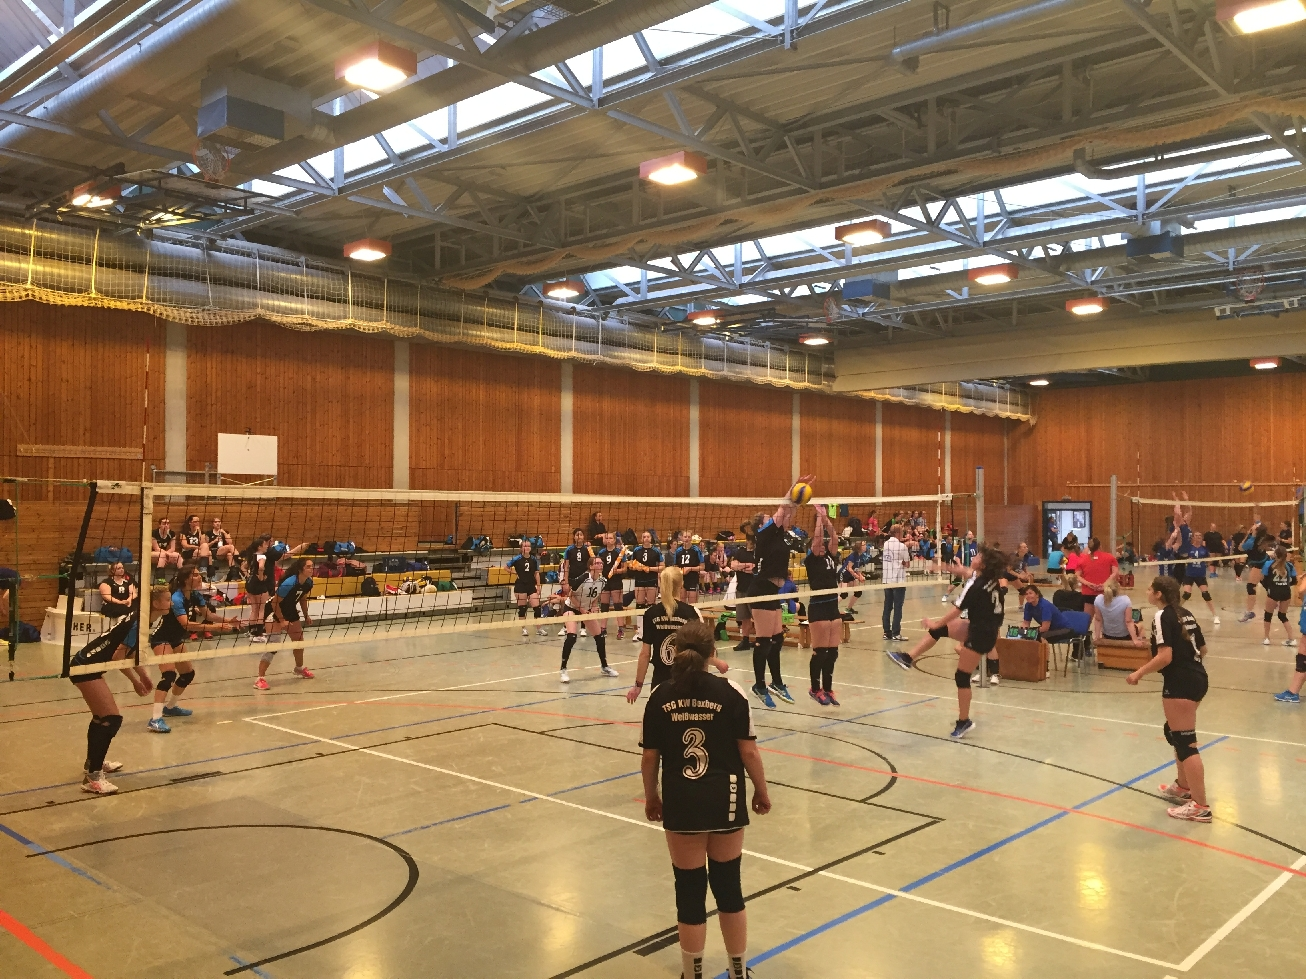 20180526 9 Damenvolleyballturnier Bild33